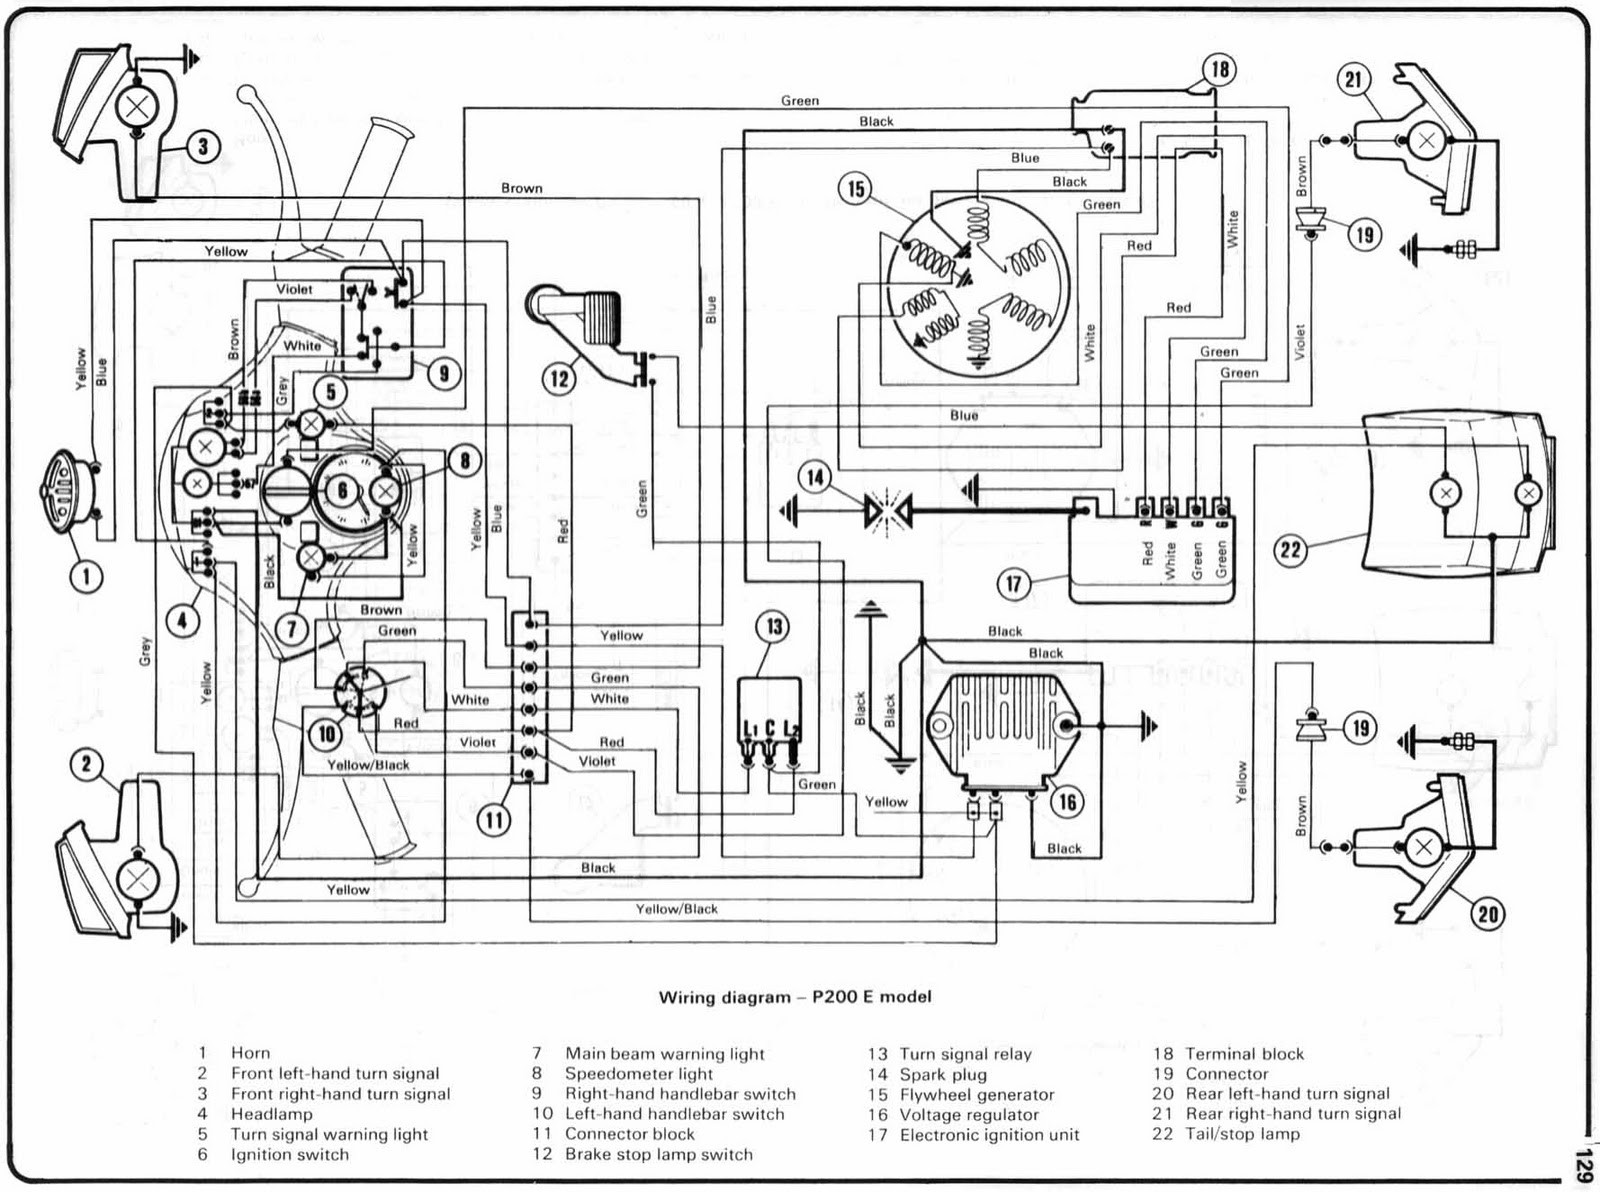 1956 mercury monterey wiring diagram circuit diagram symbols \u2022 old mercury cars vespa p200 wiring diagram on 1956 mercury monterey wiring diagram rh lsoncology co 1954 mercury monterey